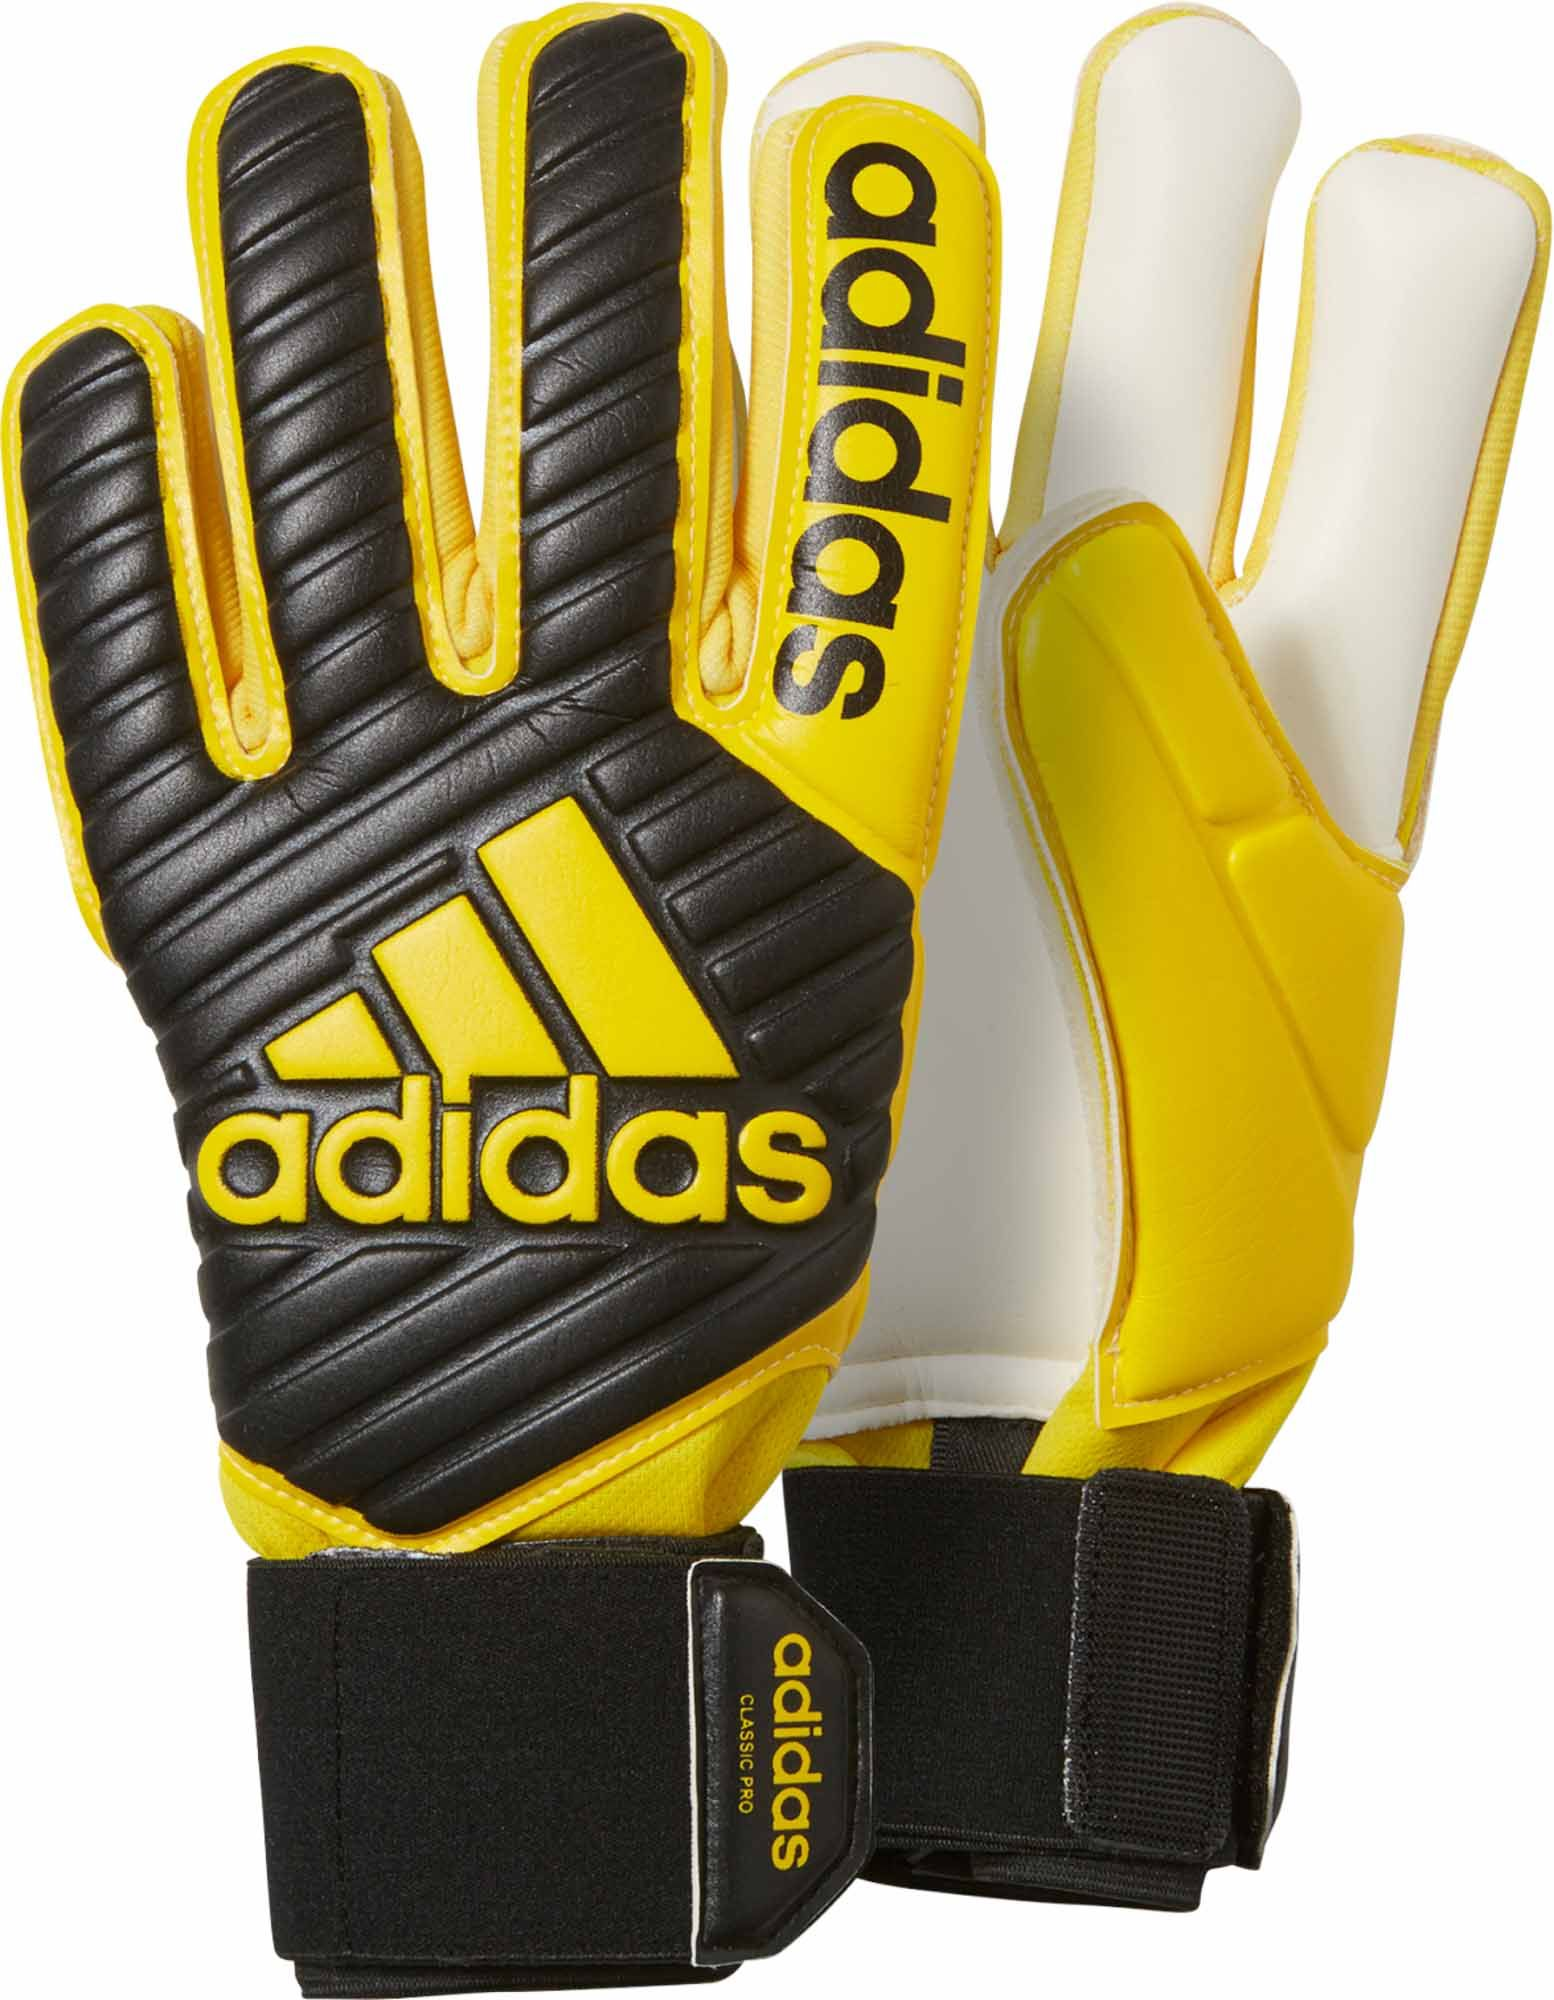 Adidas Classic Pro Goalie Gloves Buy Yours From Soccerpro Adidas Classic Yellow Adidas Goalkeeper Gloves